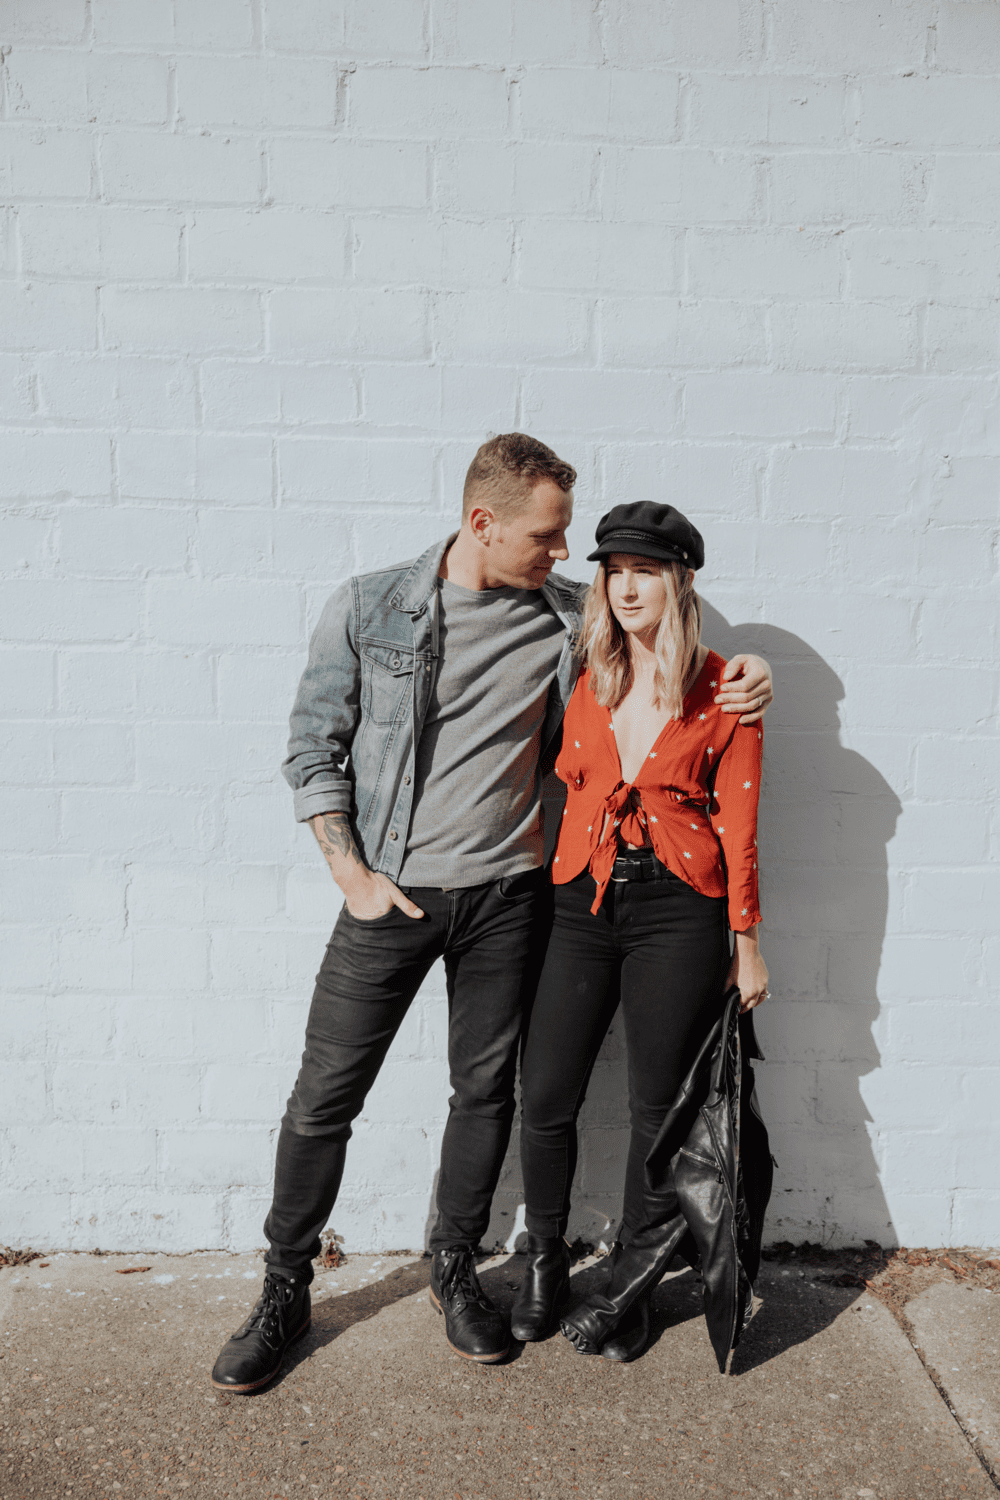 Guy Barnhart and Kayla Beckmann Barnhart posing in front of a brick wall